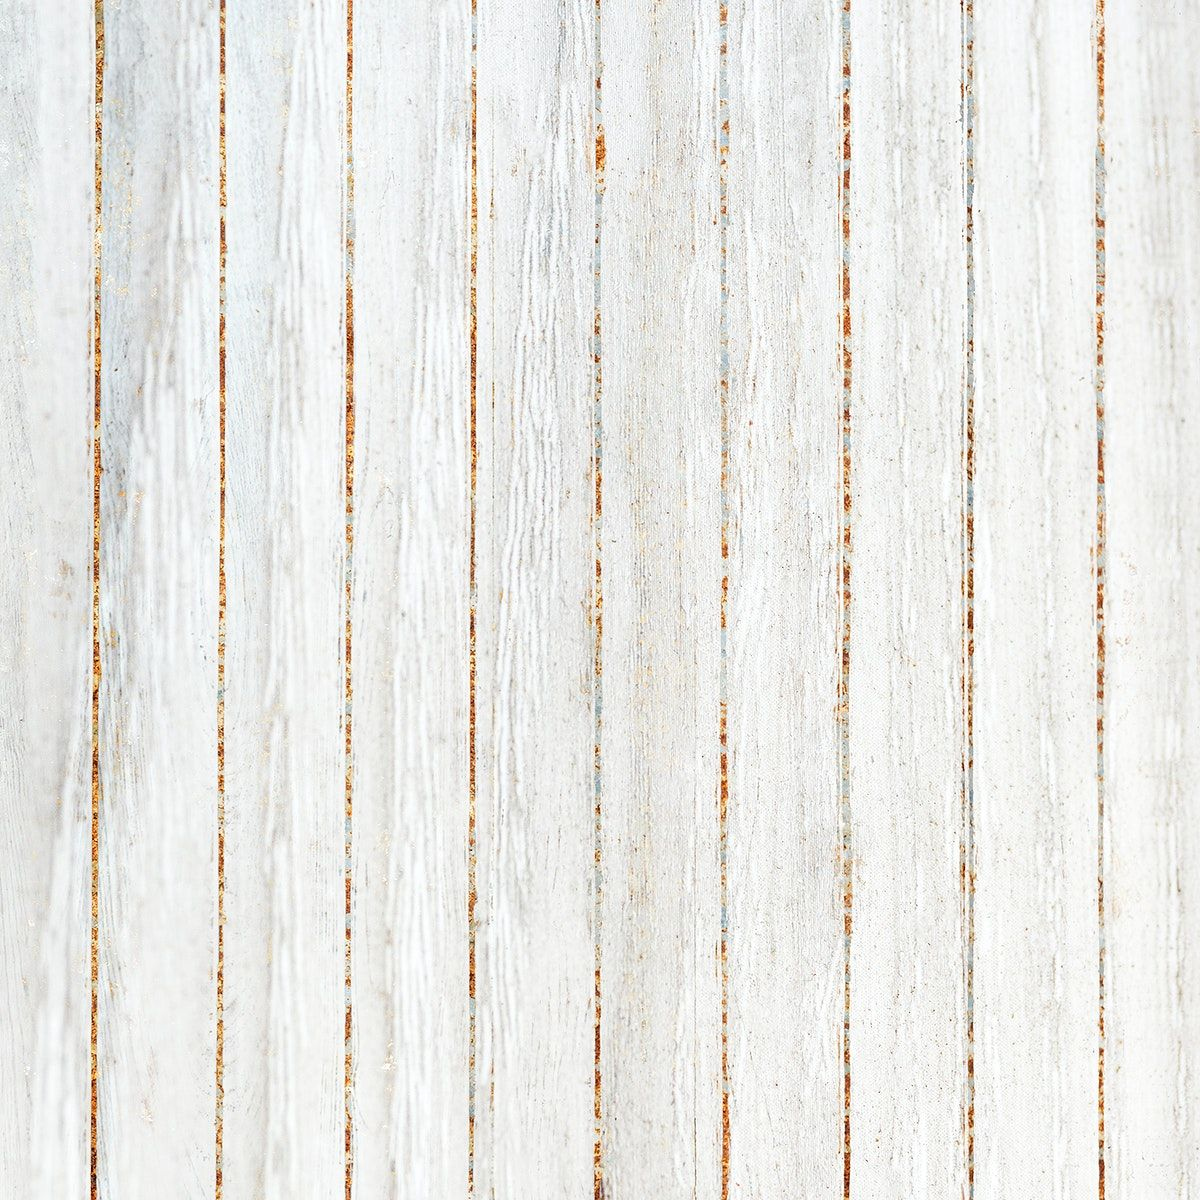 Rustic White Wood Texture Background Design Free Image By Rawpixel Com Sasi In 2020 White Wood Texture Wood Texture Black Wood Texture